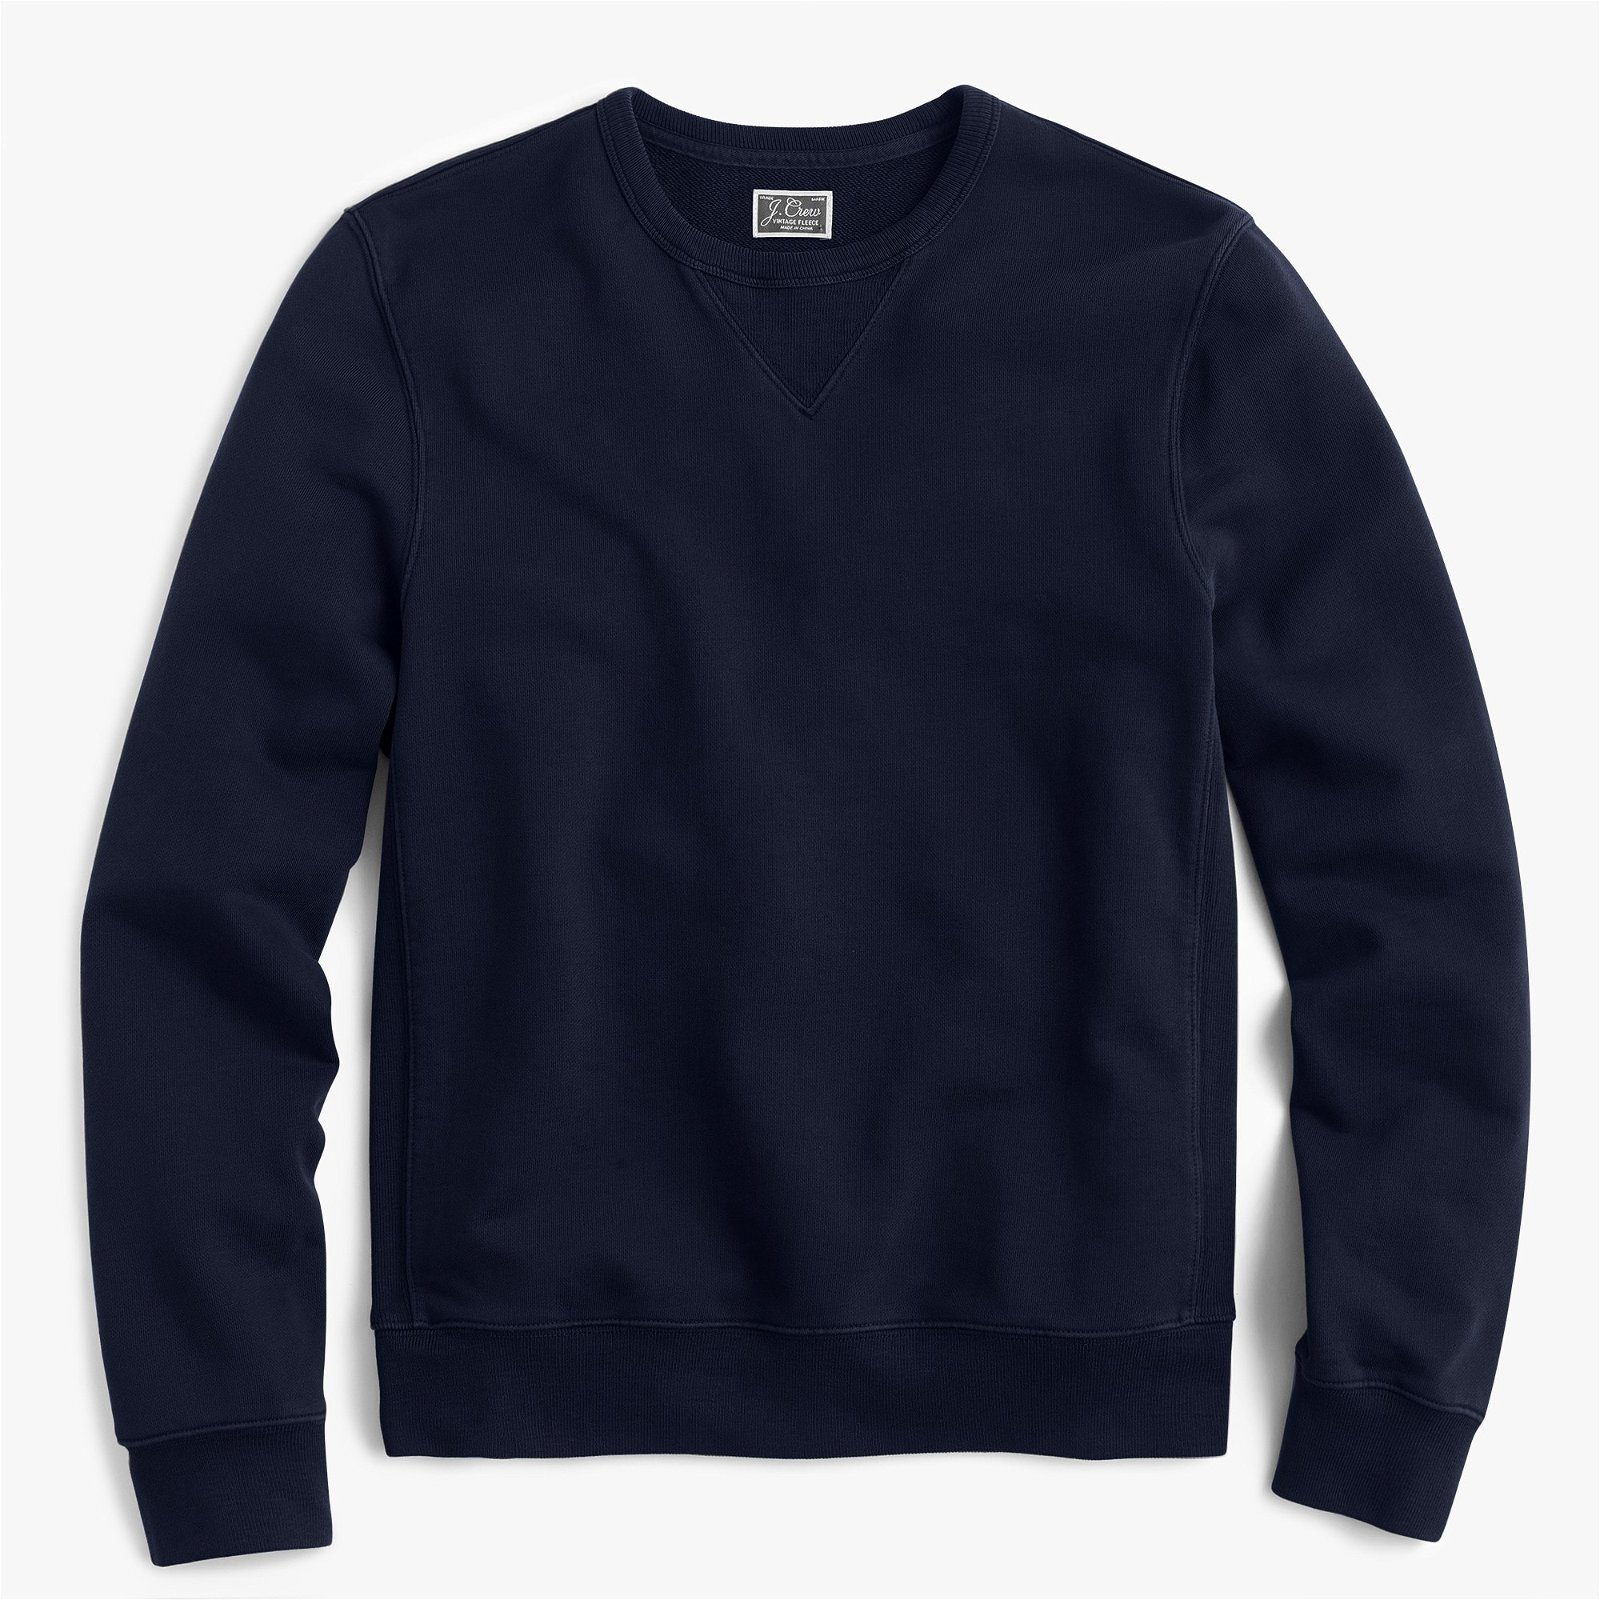 Washed french terry crewneck sweatshirt